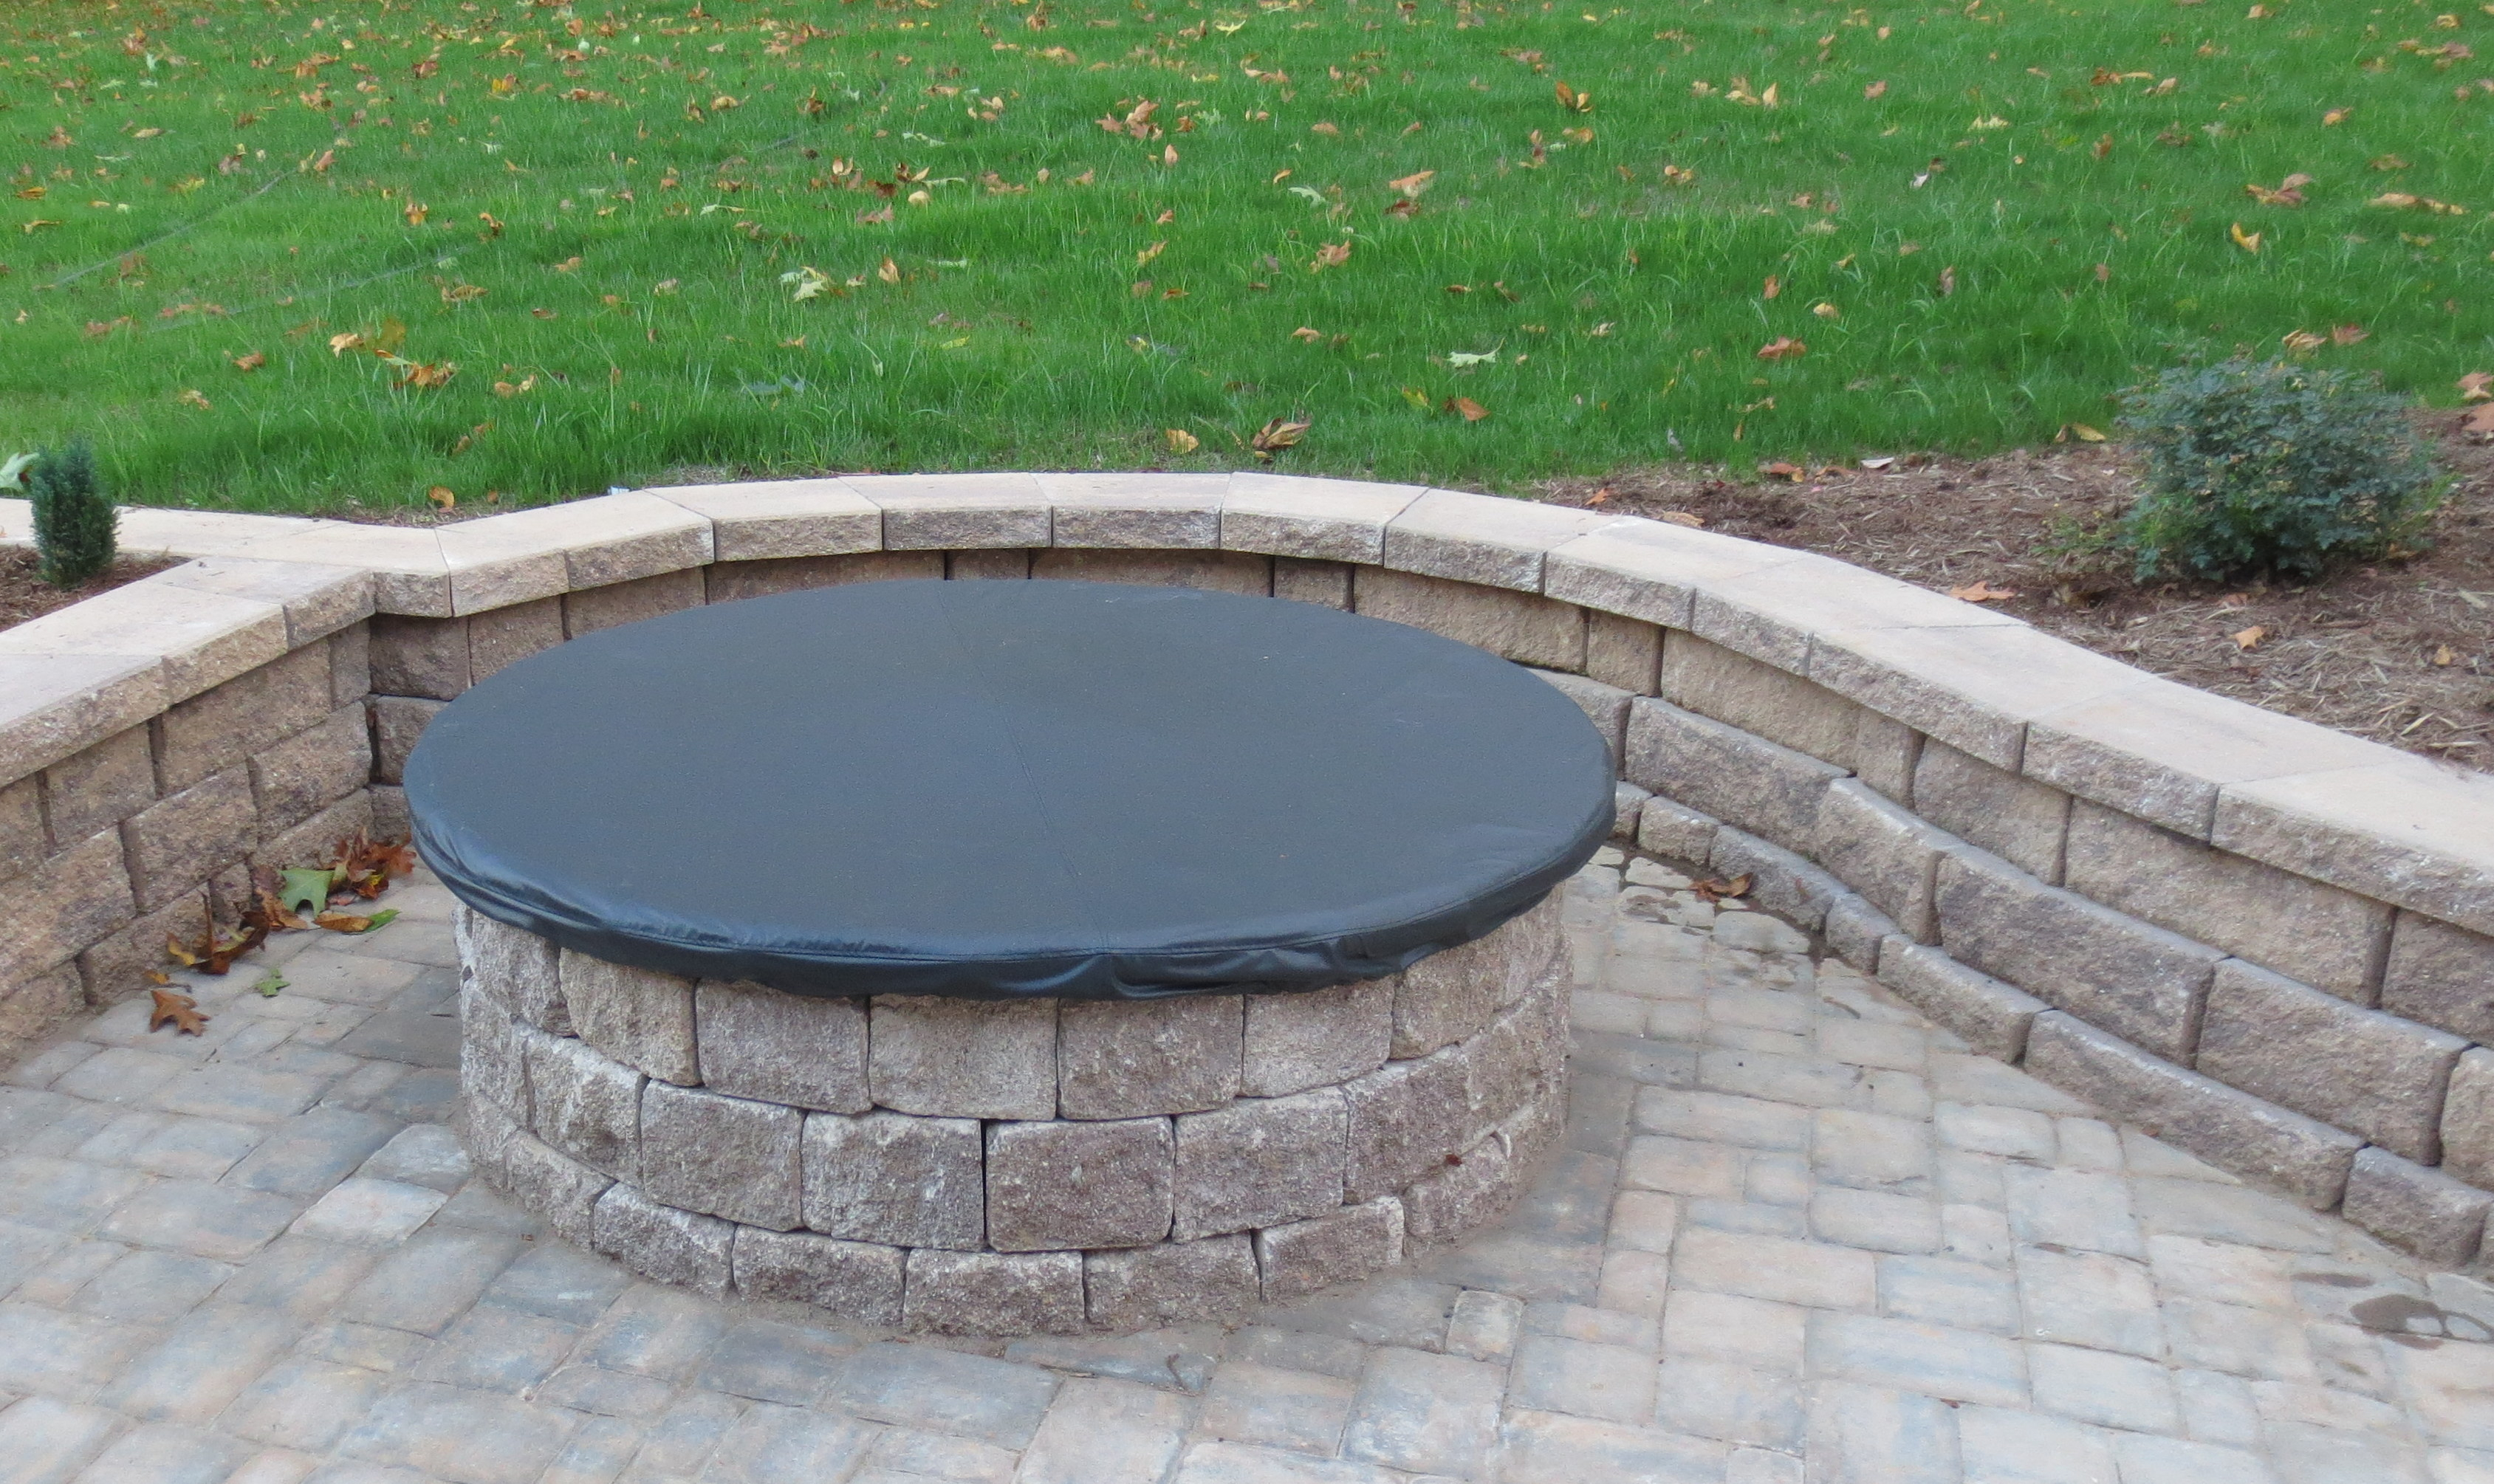 Fire Pit Cover Equip Home Fitness within dimensions 3377 X 2010